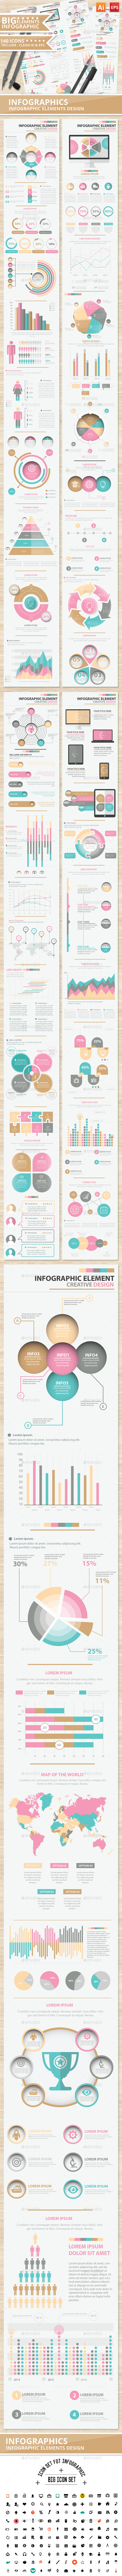 Big Infographic Elements Design Scheme V. 4 - Infographics